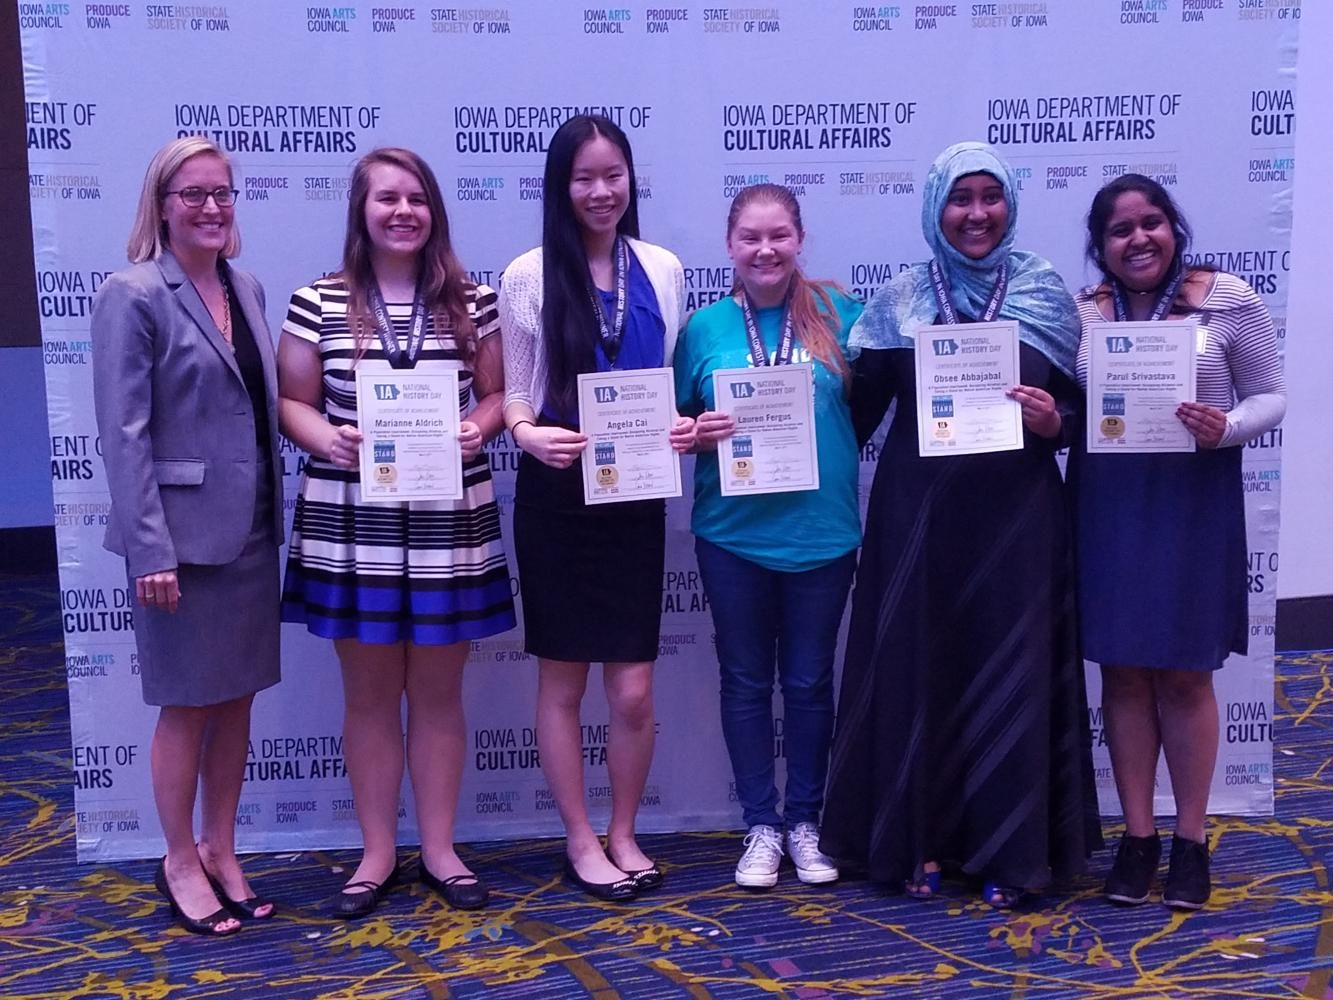 [left to right] Marianne Aldrich '19, Angela Cai '19, Lauren Fergus '19, Obsee Abbajabal '19 and Parul Srivastava '19 qualified for nationals.